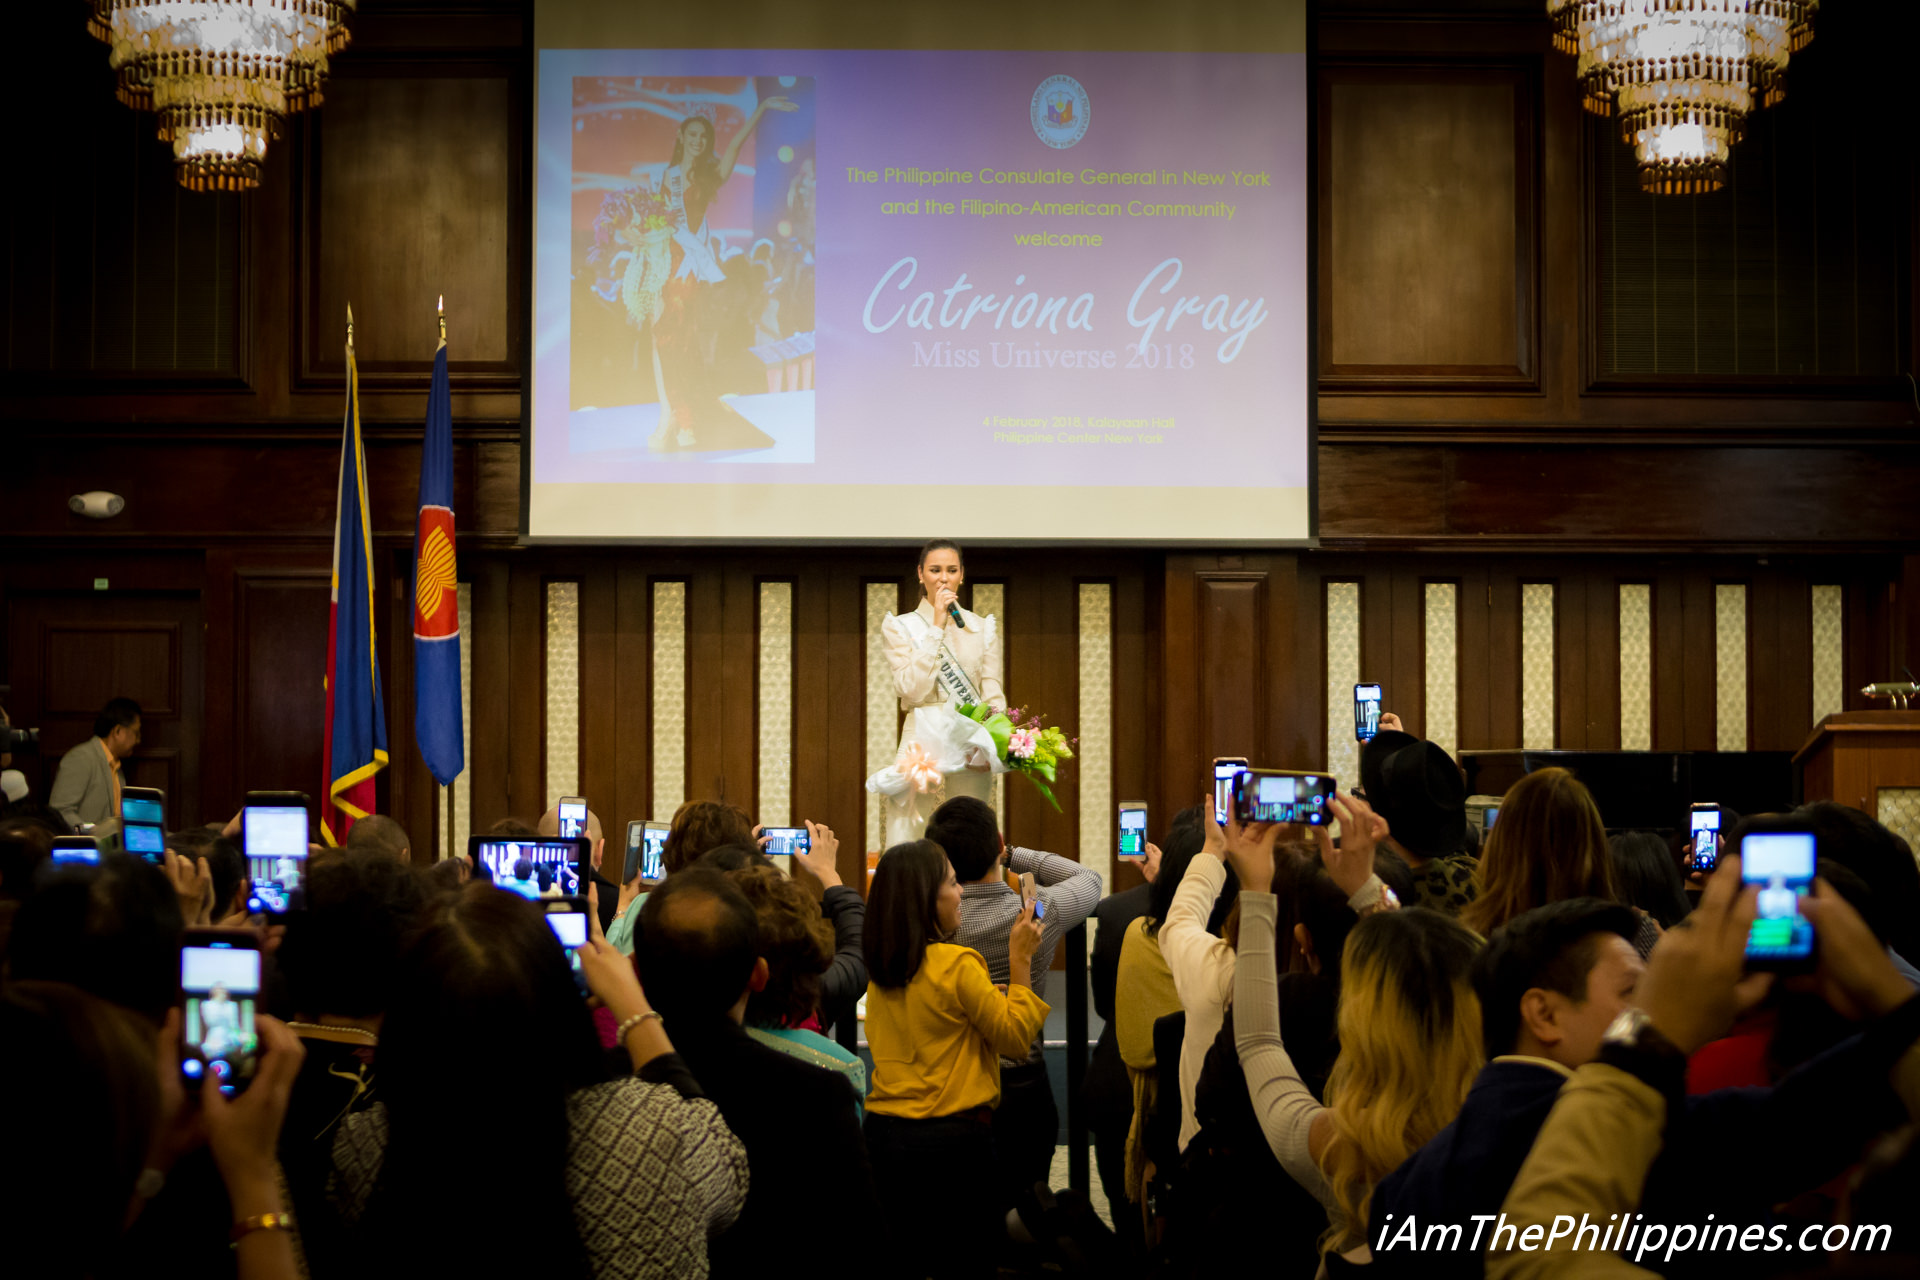 Meet and Greet with Ms. Universe 2019 Catriona Elisa Magnayon Gray, organized by the Philippine Center in New York.